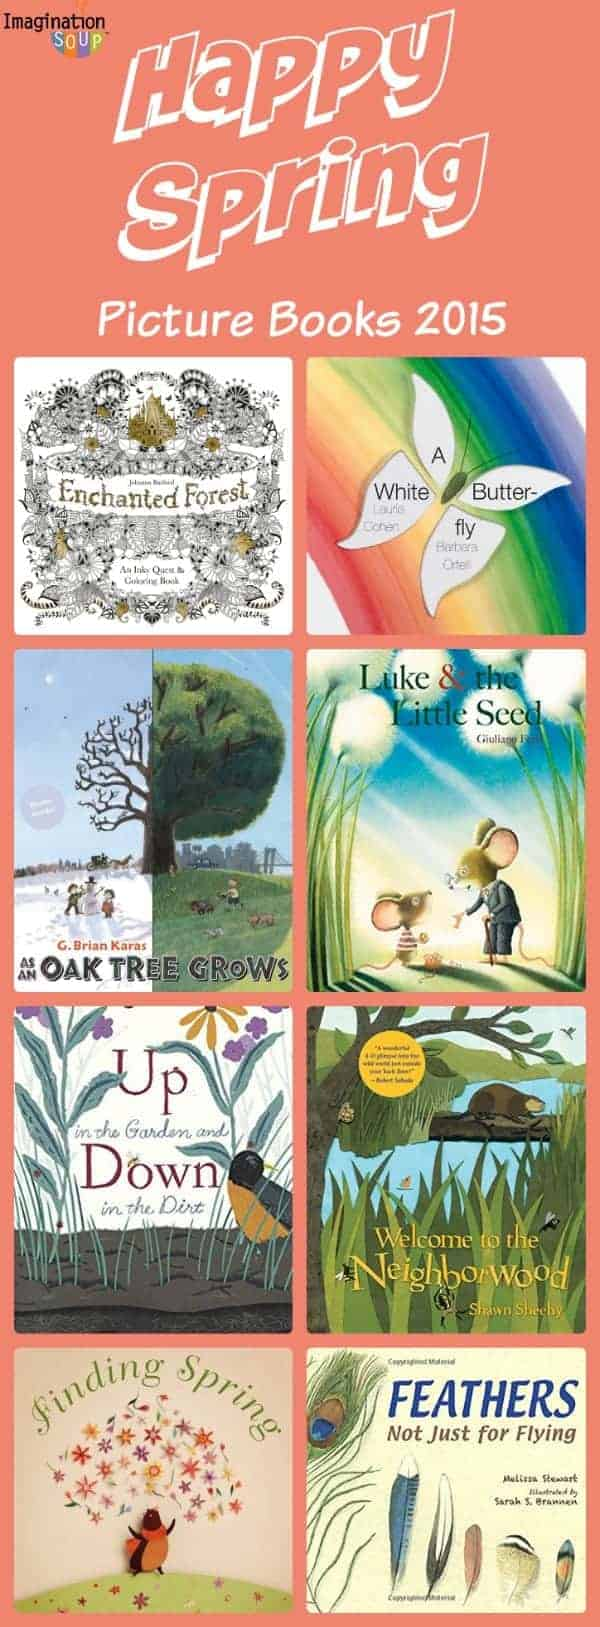 new picture books for spring